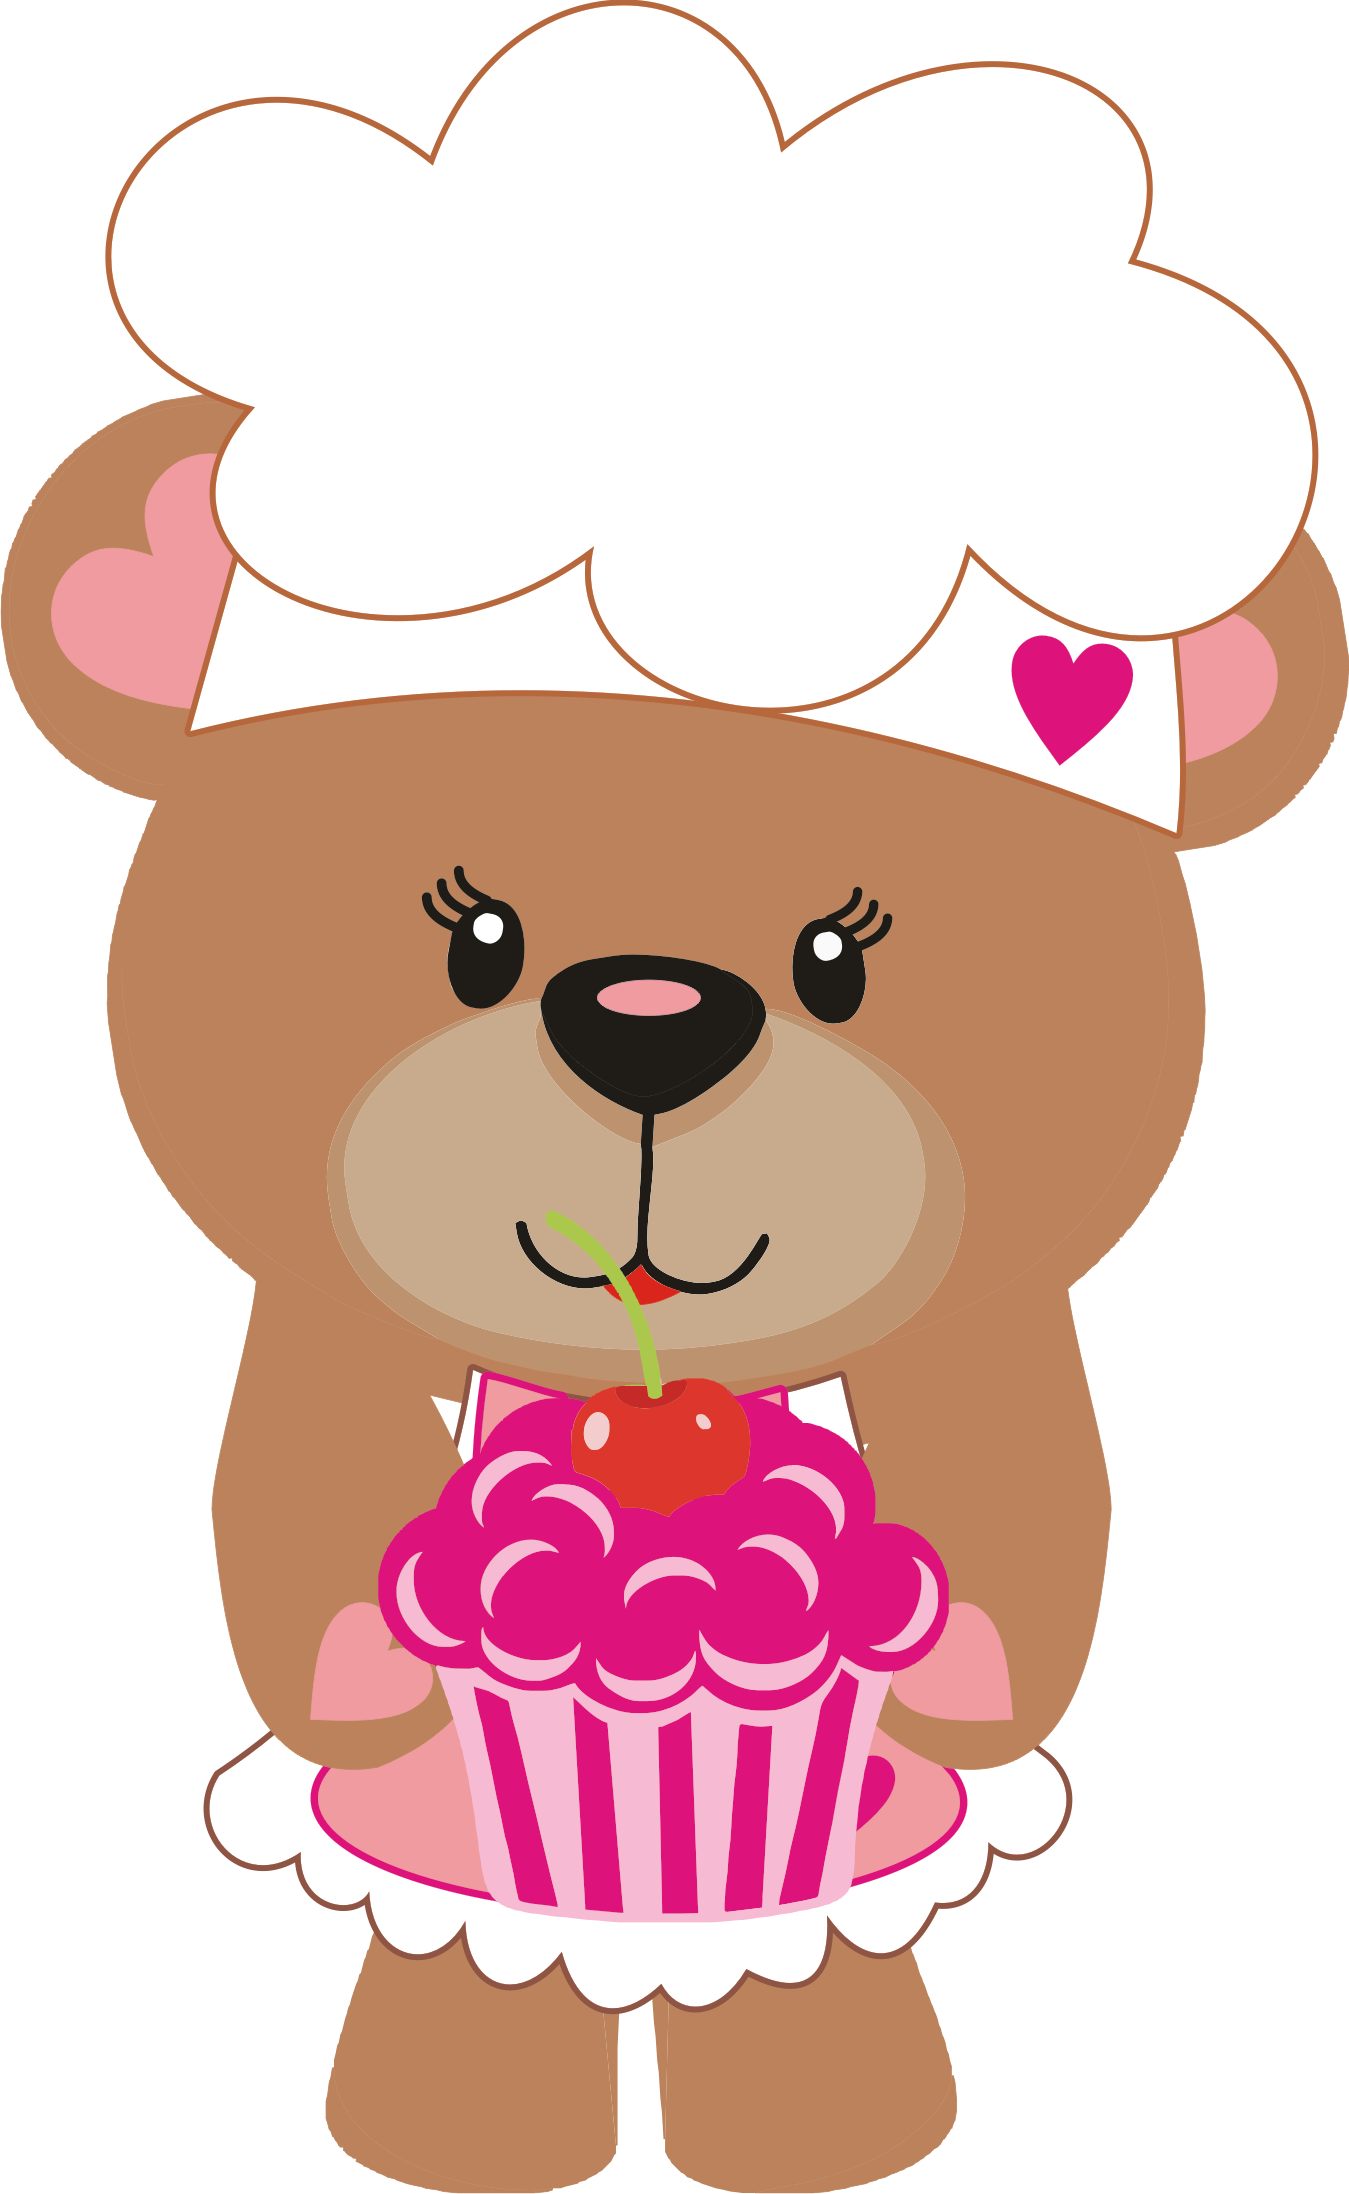 Food clipart baby. Ibre brlk vo png